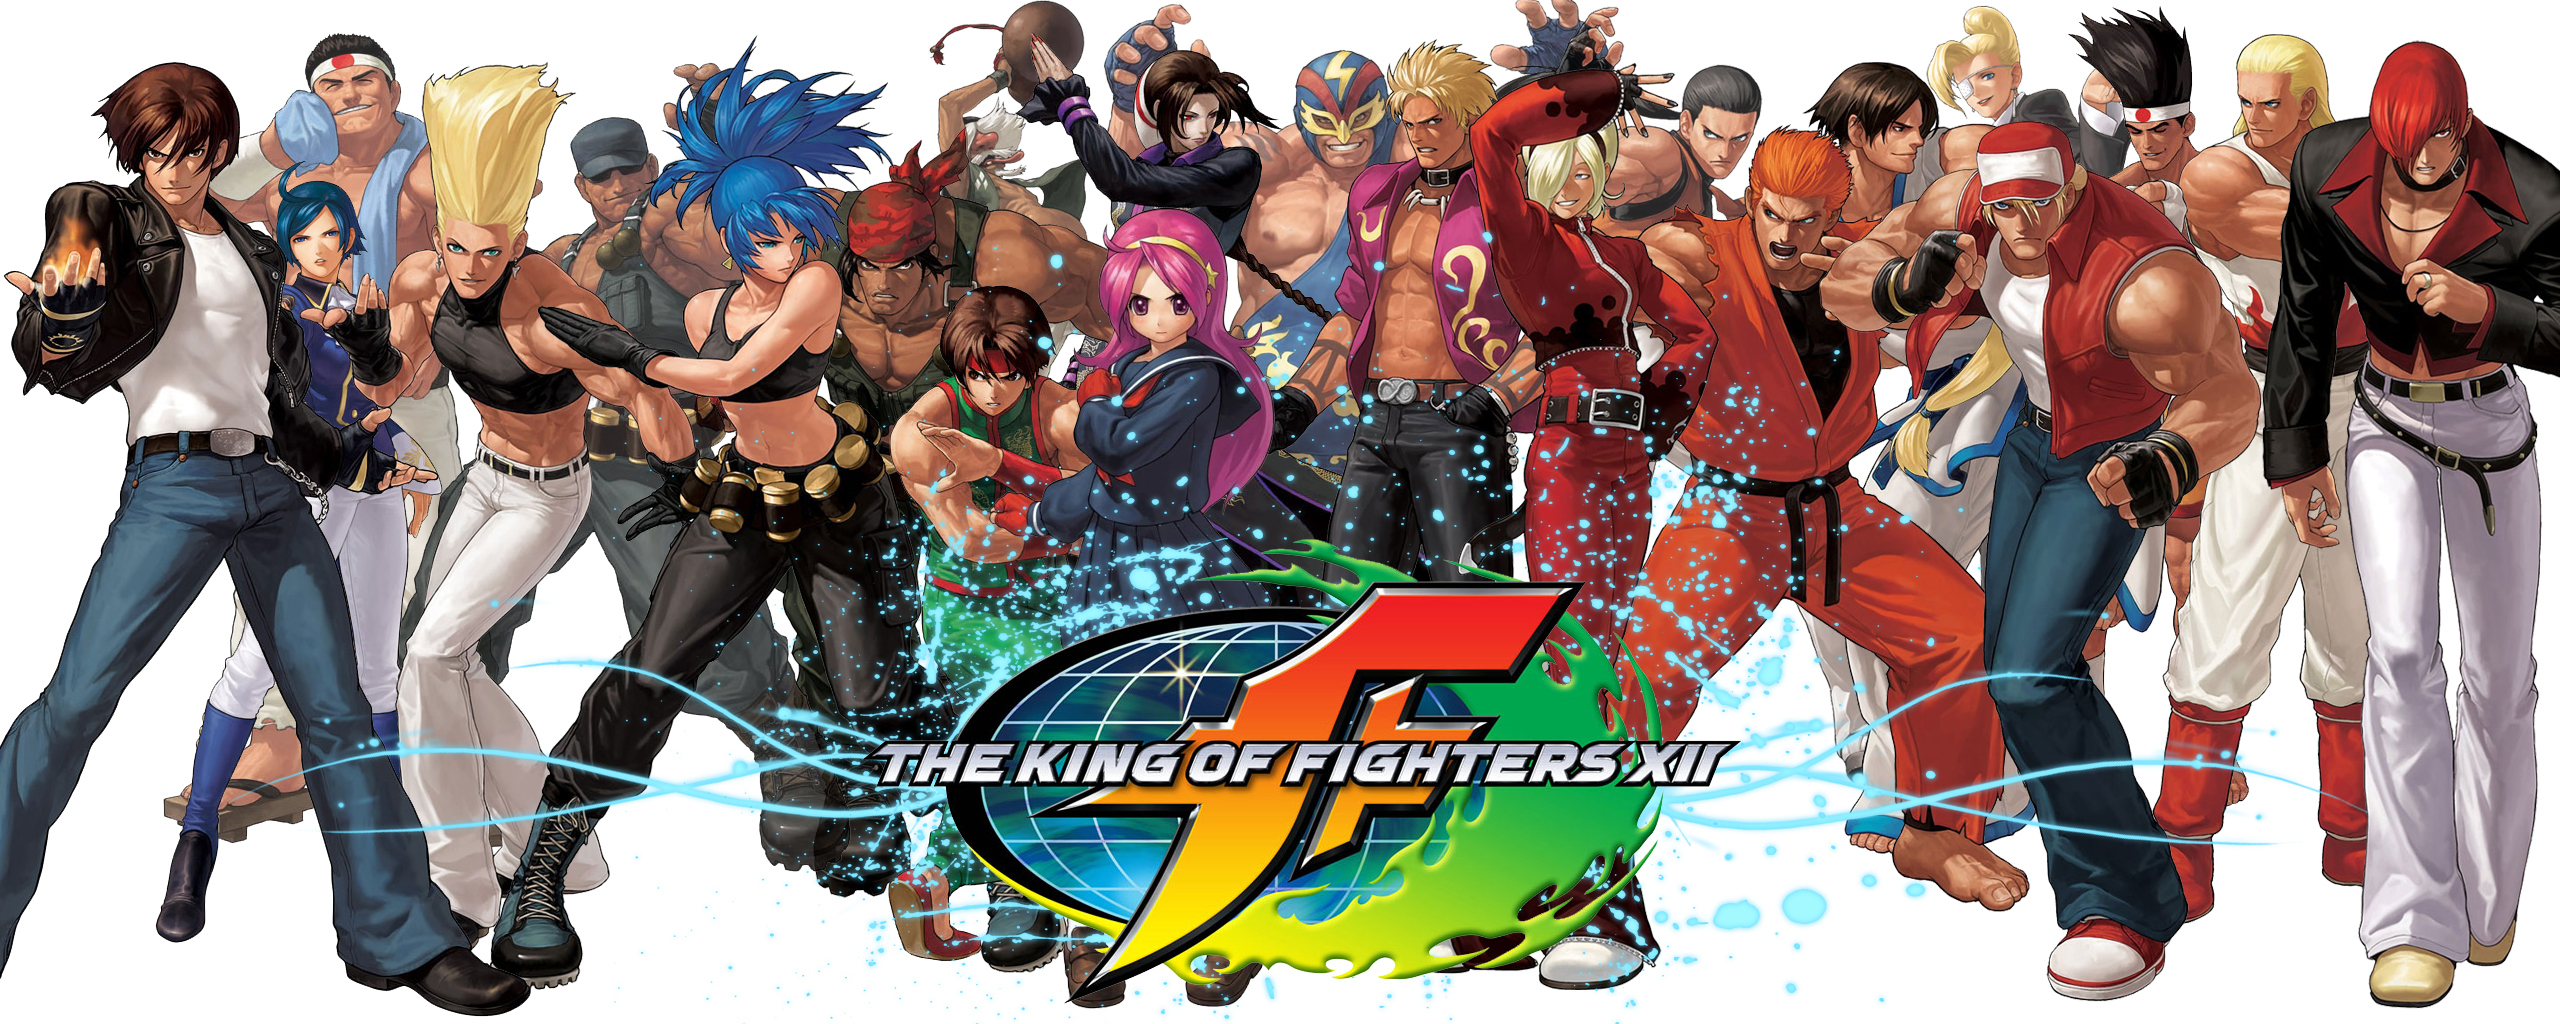 KOF Rebirth the king of fighters 13368389 2560 1024 Wild sex in naruto hentai